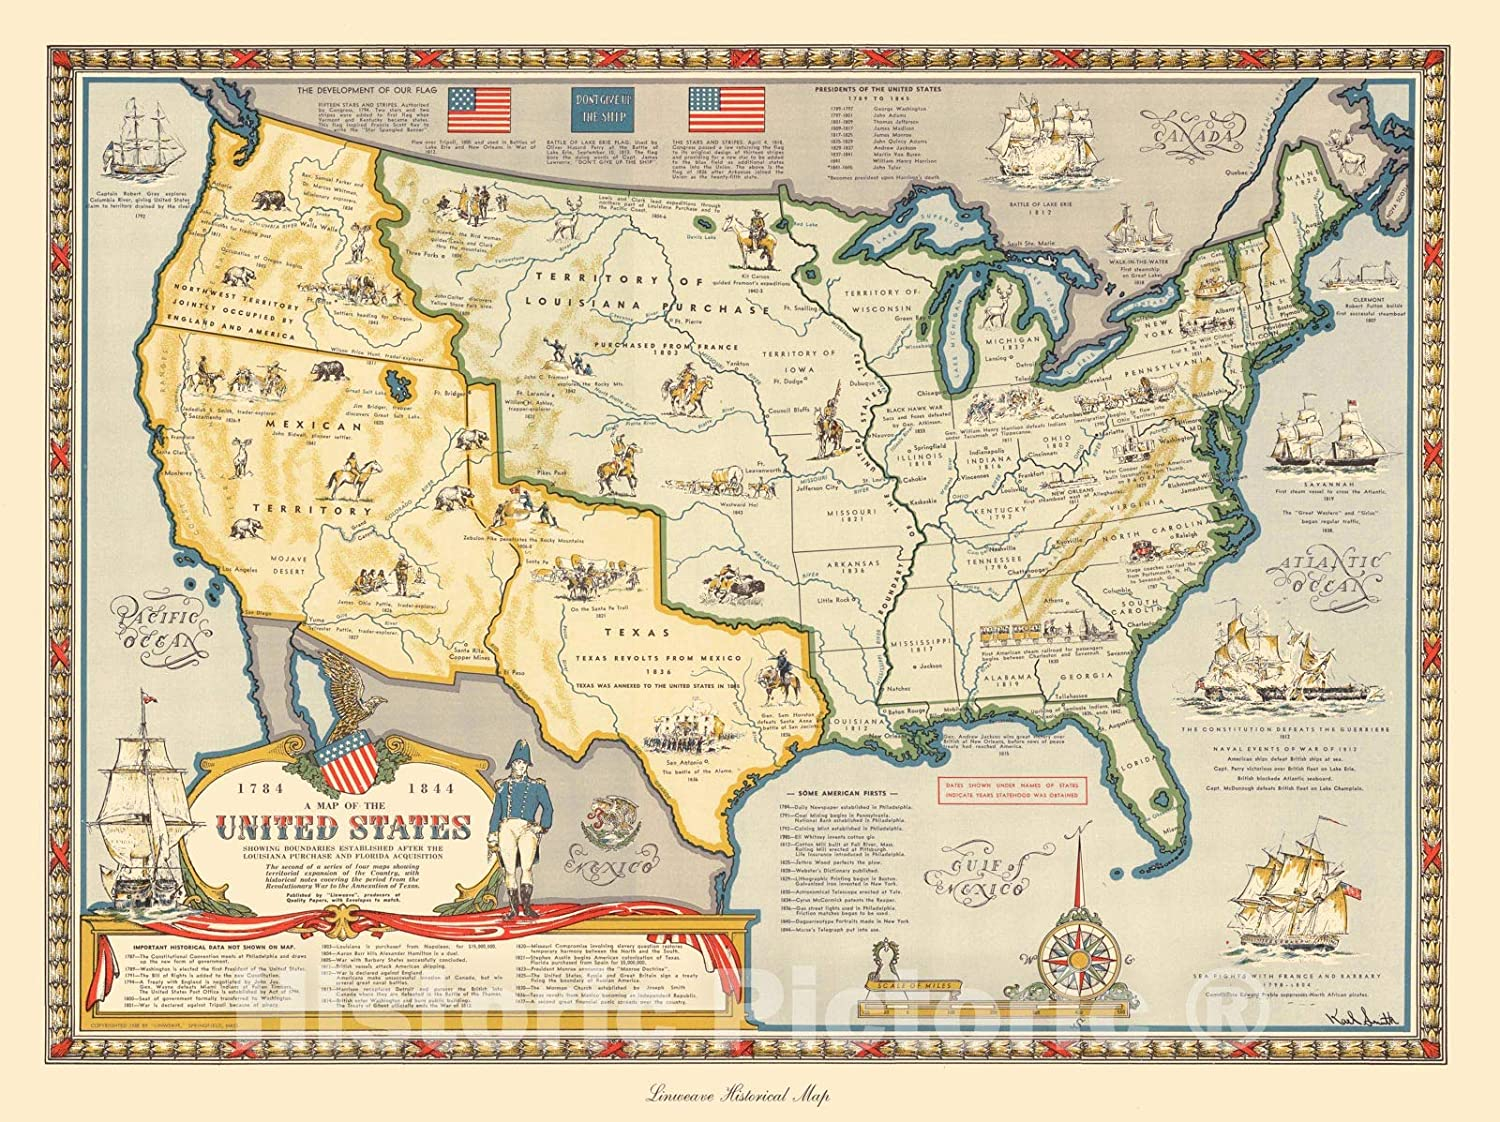 A Map of the United States Showing Boundaries Established after the  Louisiana Purchase and Florida Acquisition.1784-1844. Published, 1958 -  Vintage ...